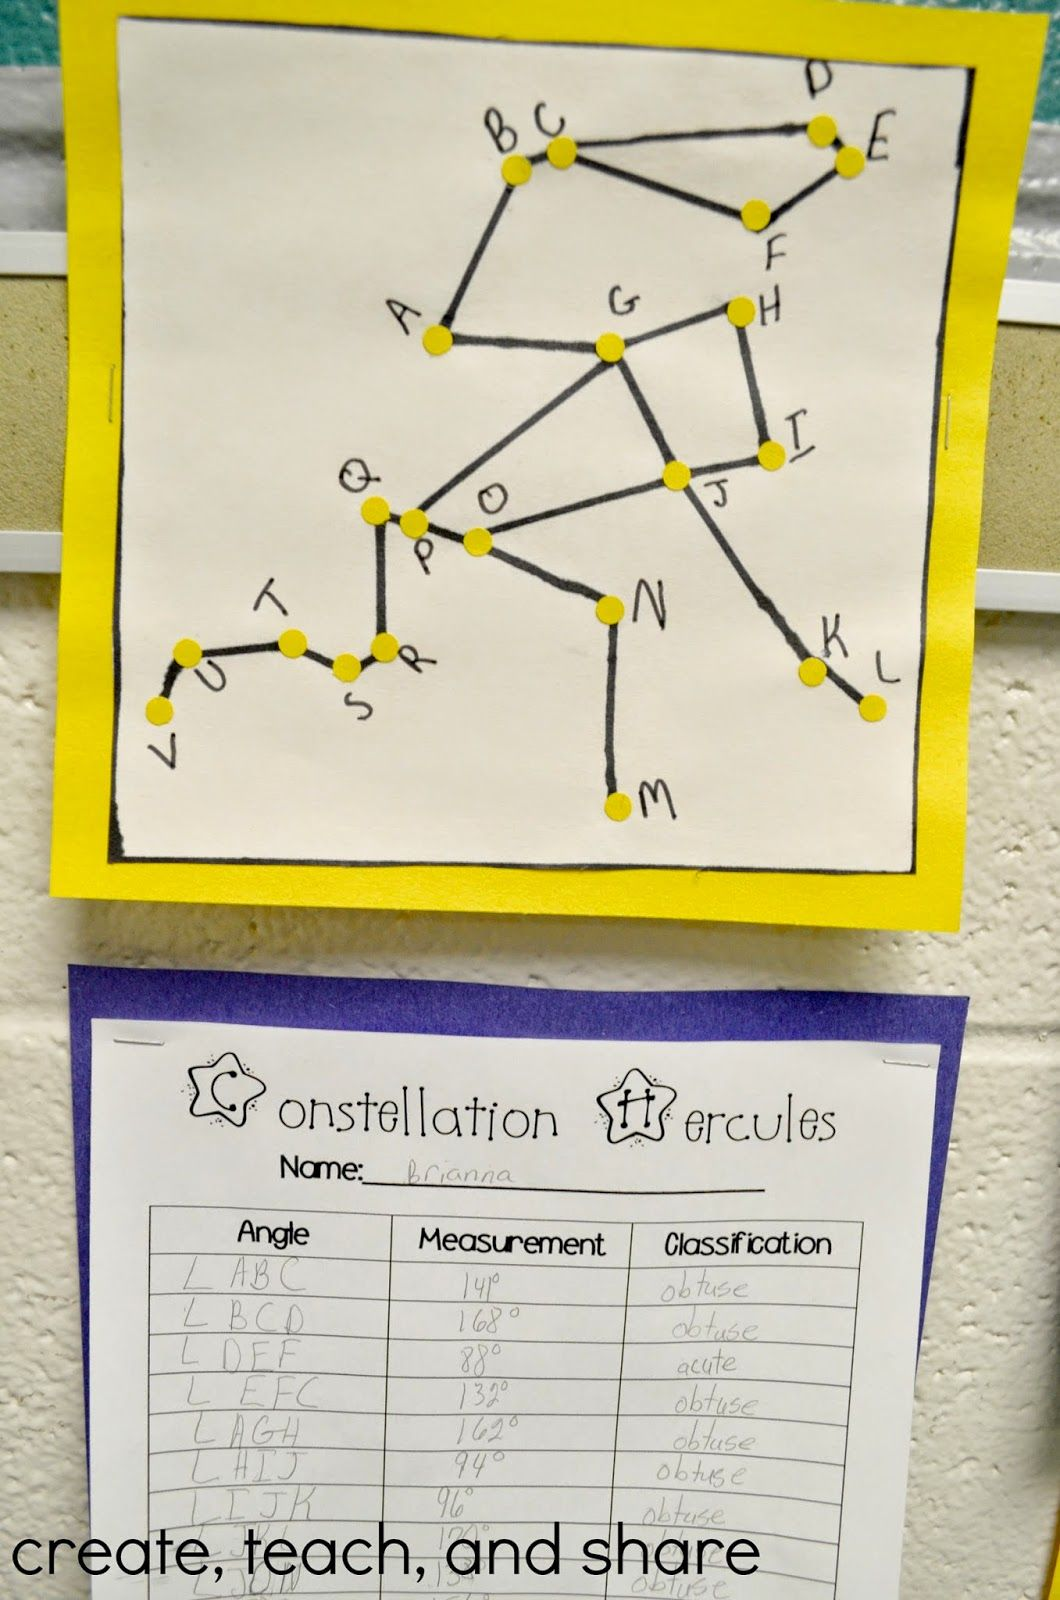 What Do Constellations And The Study Of Angles Have In